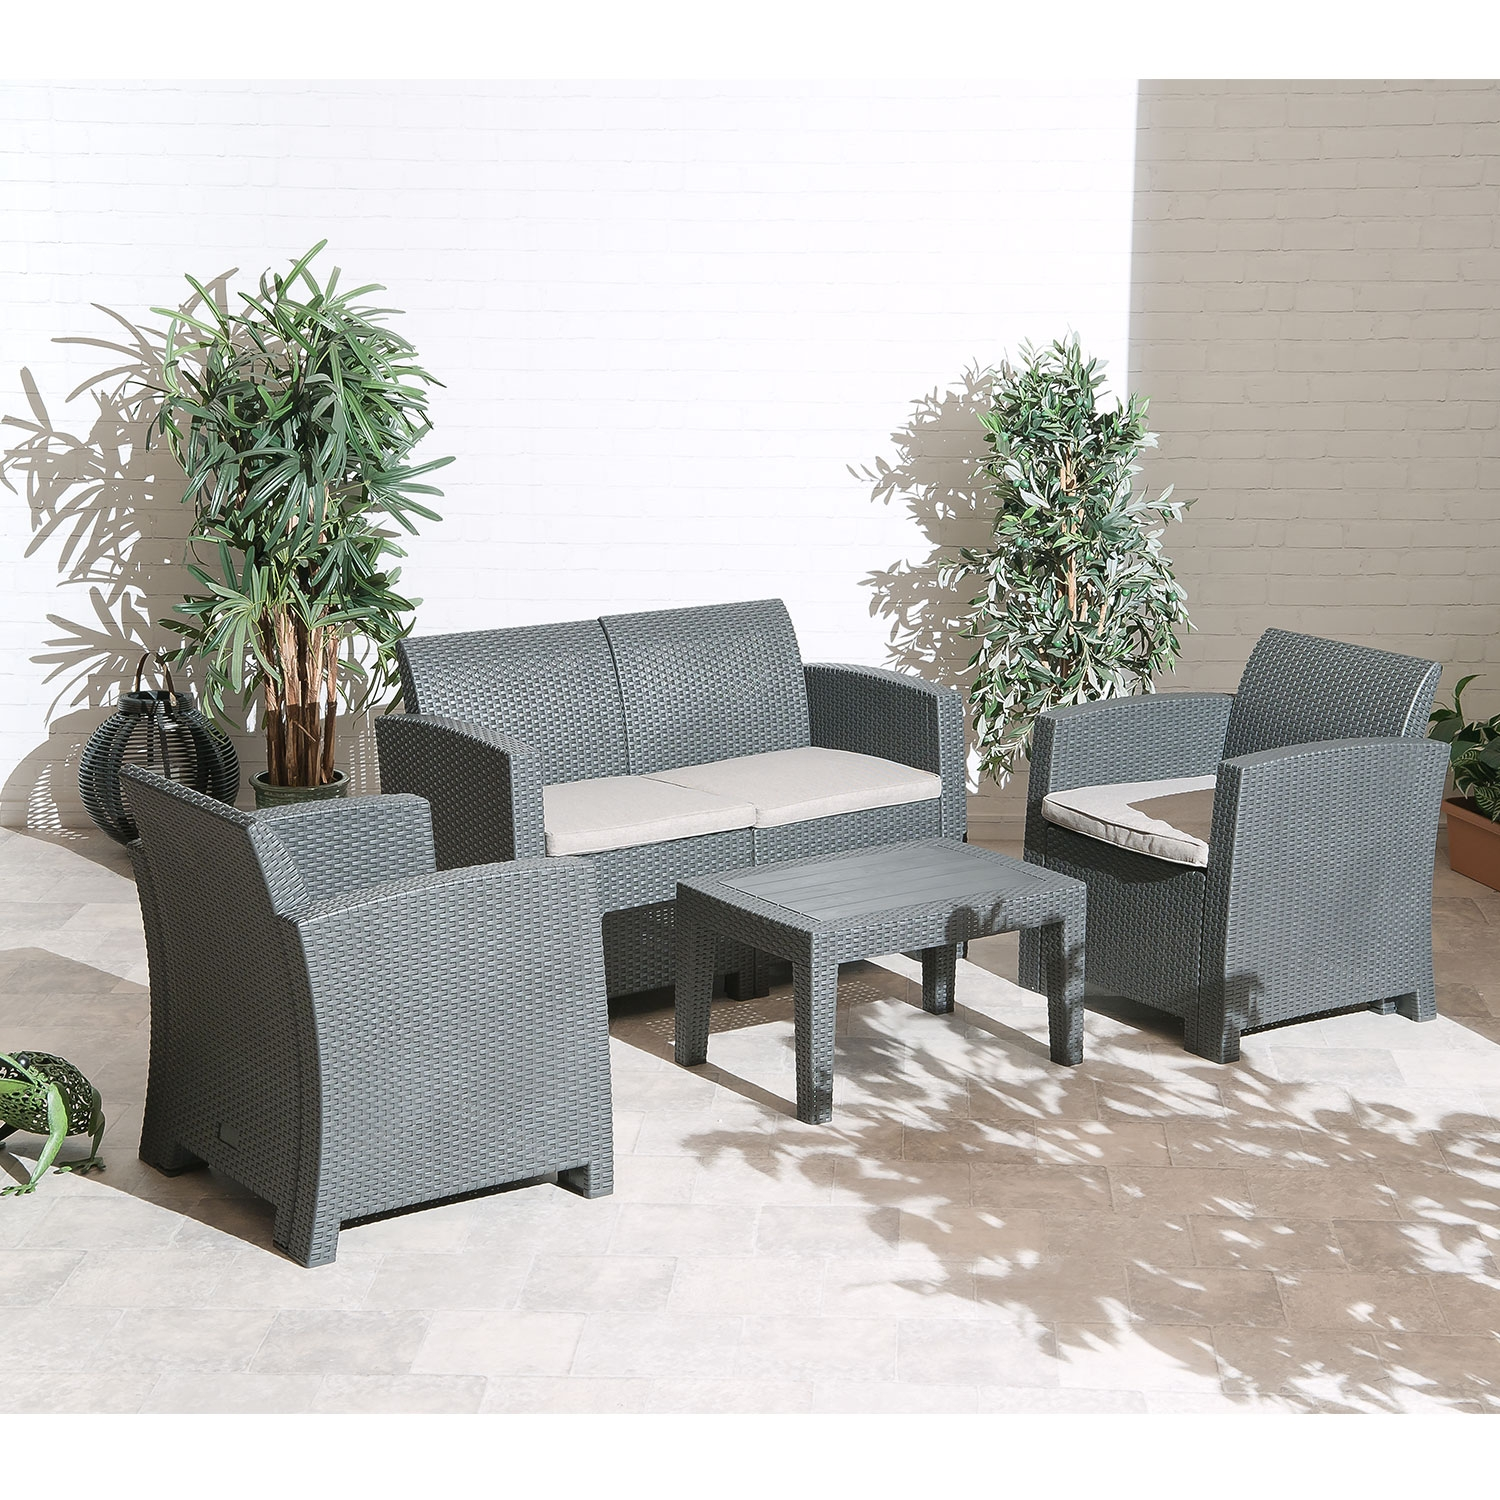 Florence Outdoor Garden Lounge Set With Seat Cushions